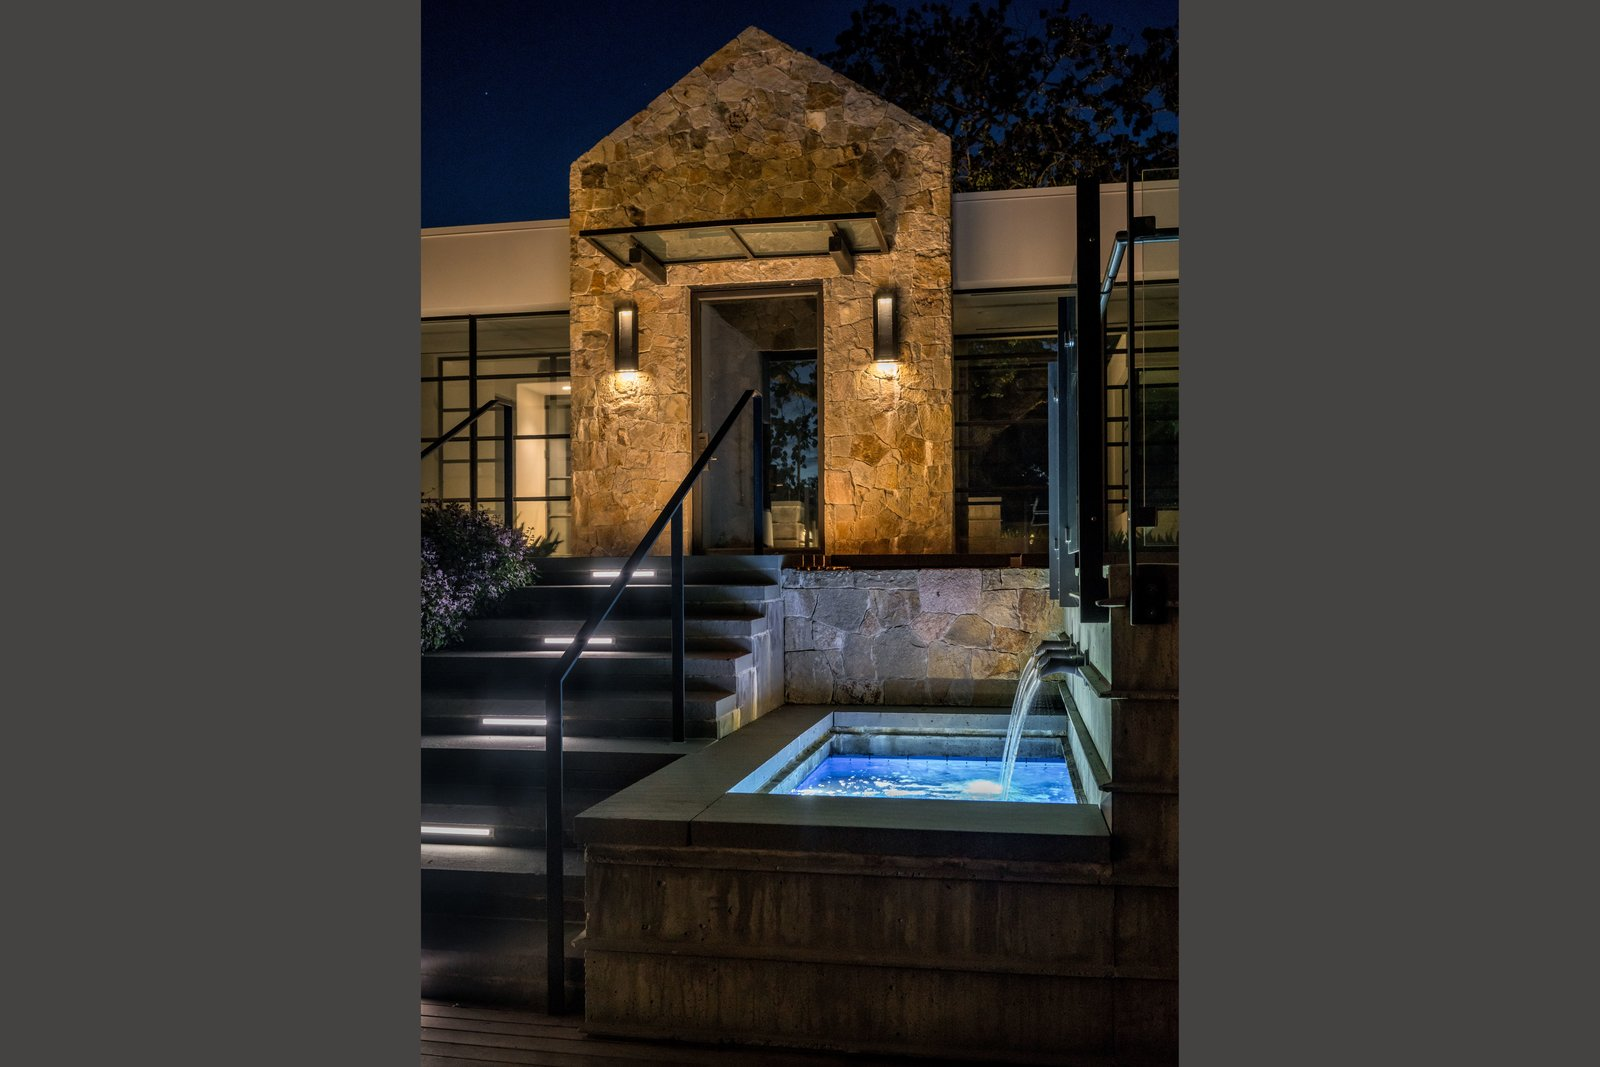 Elegant lighted water feature